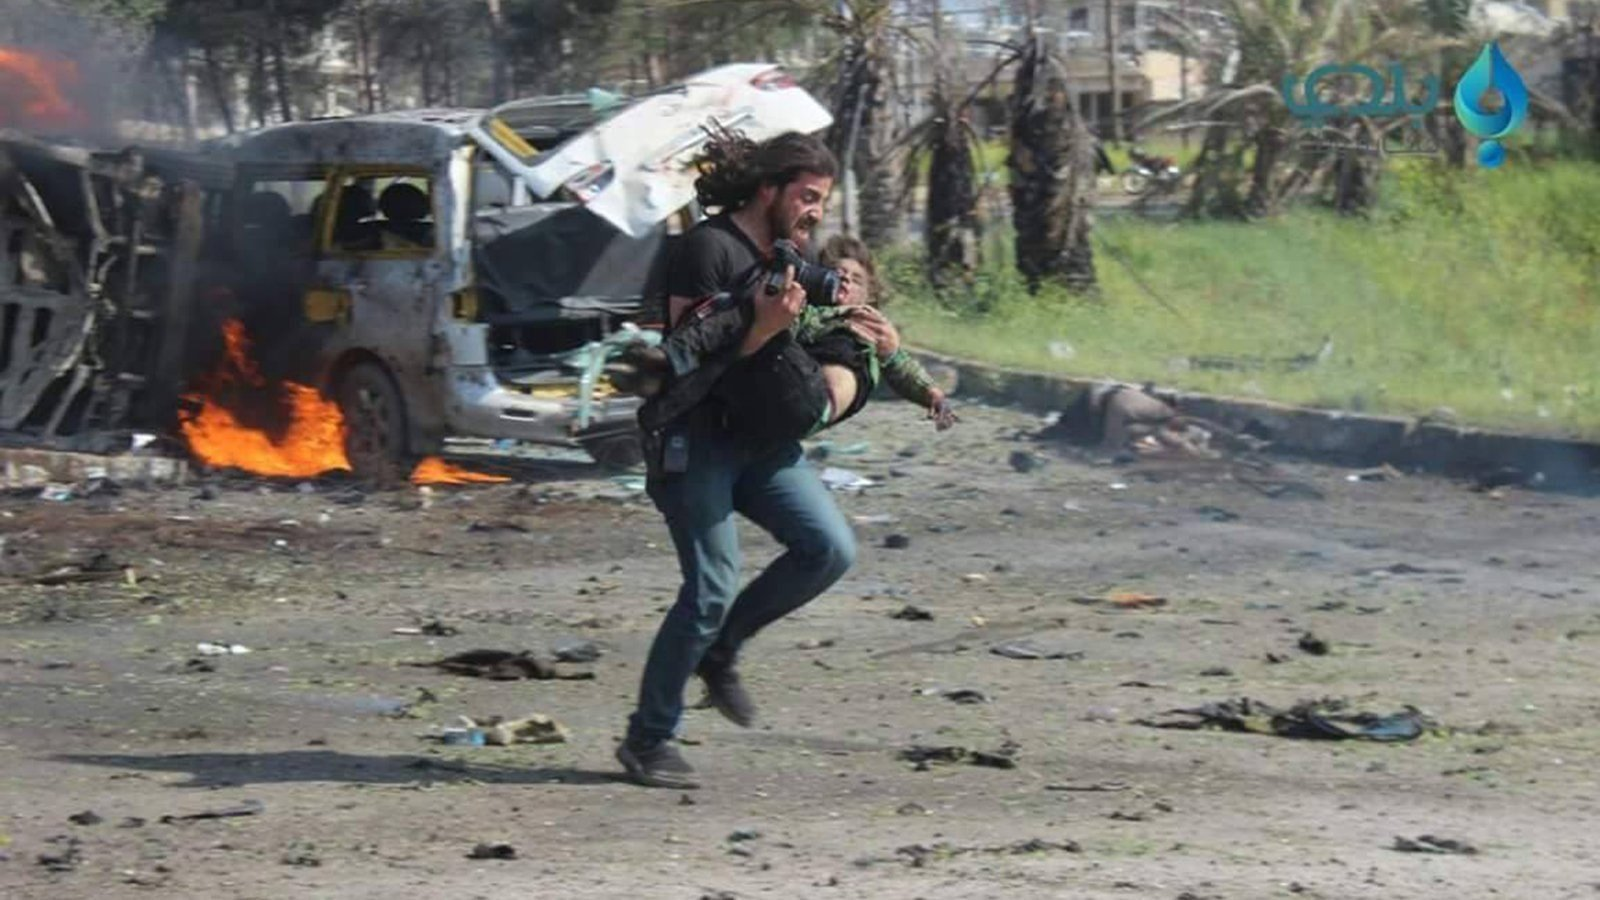 Photographer takes action instead of pictures in Syria